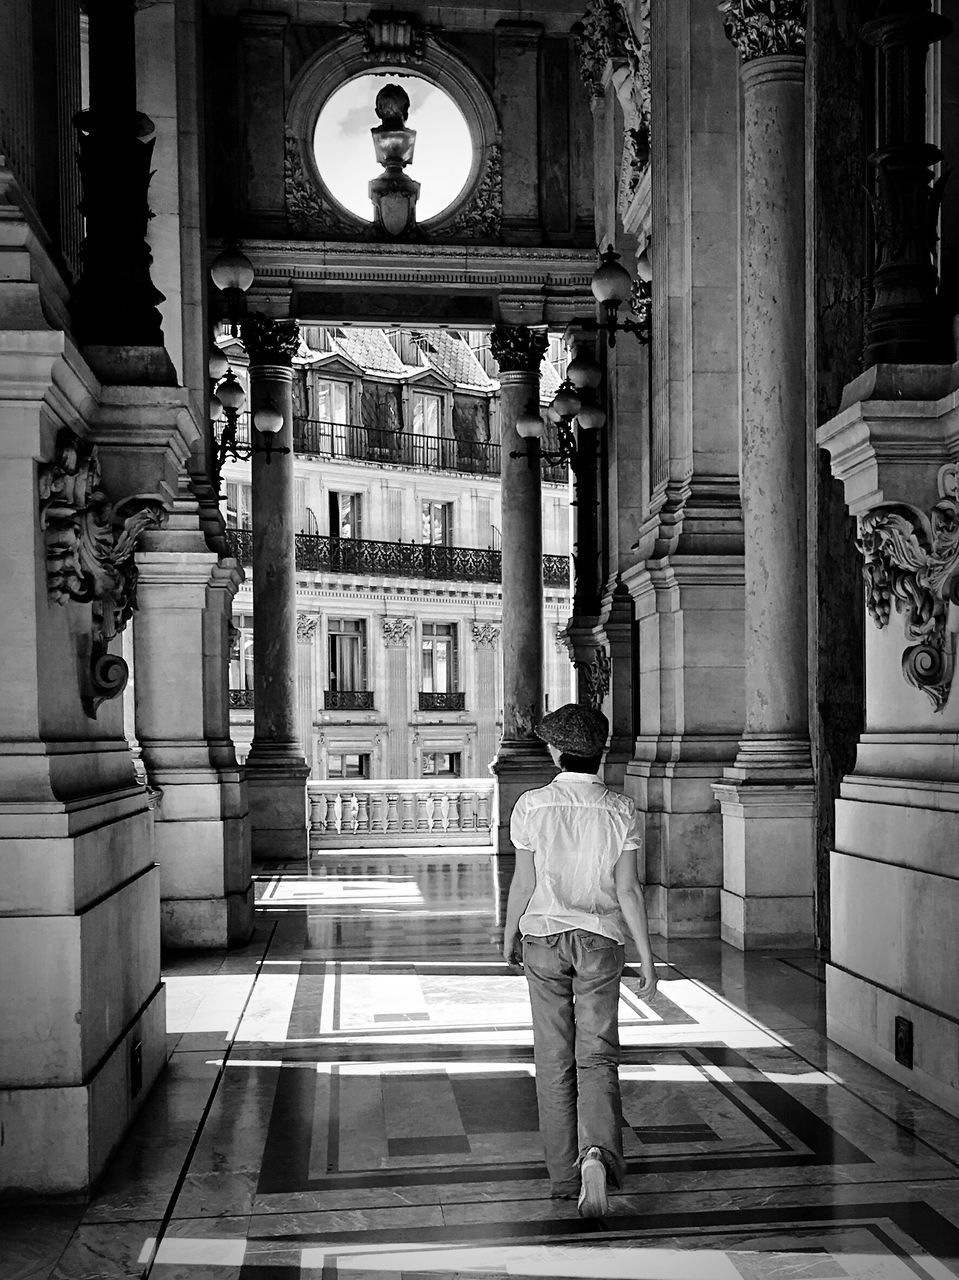 rear view, architecture, real people, built structure, full length, walking, one person, building exterior, men, illuminated, indoors, day, people